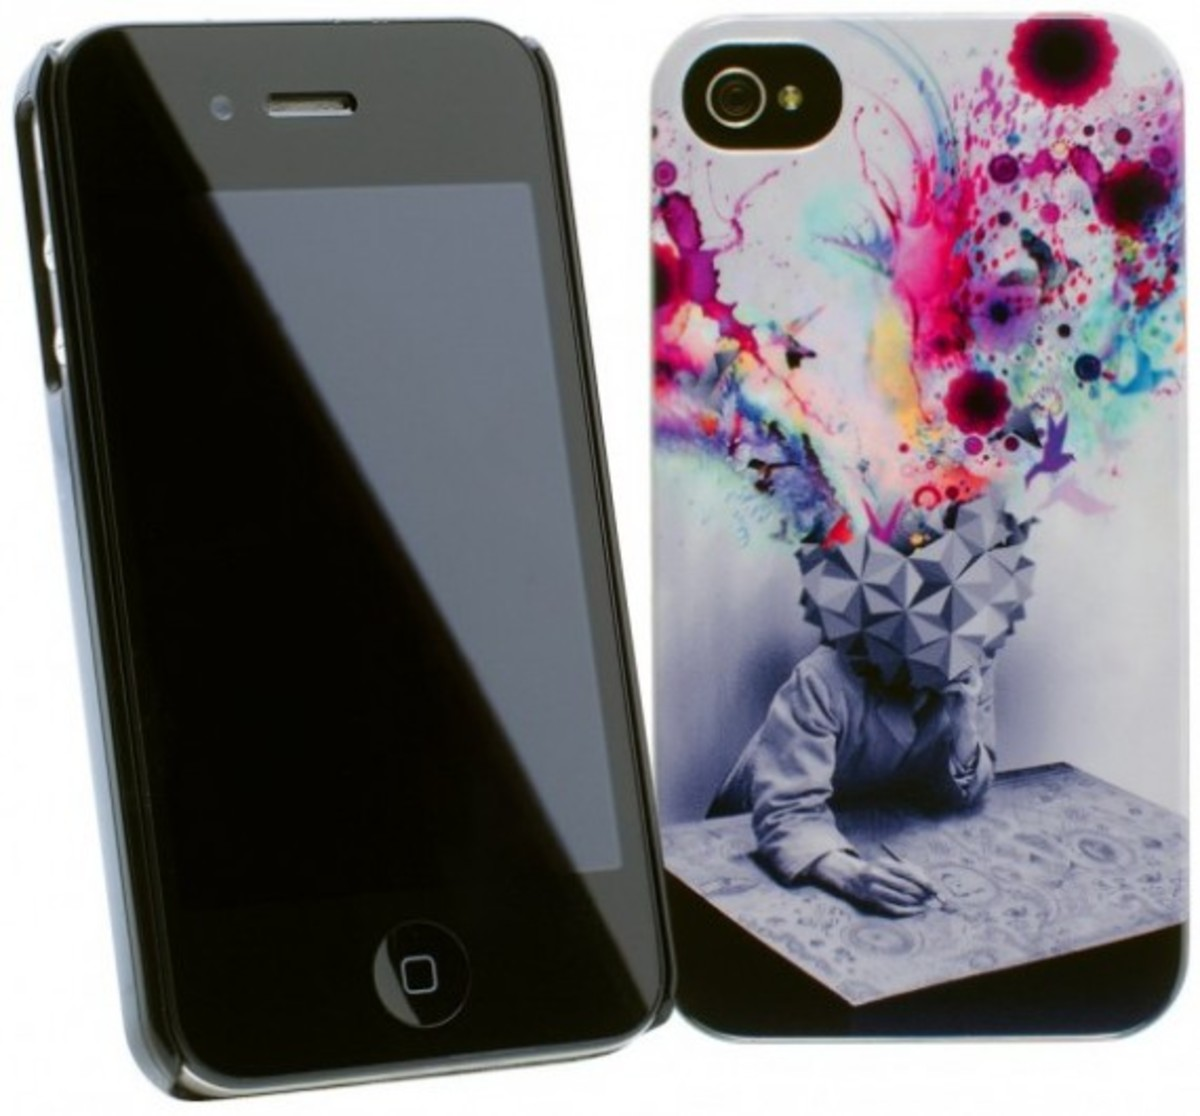 imaginary-foundation-iphone-case-01